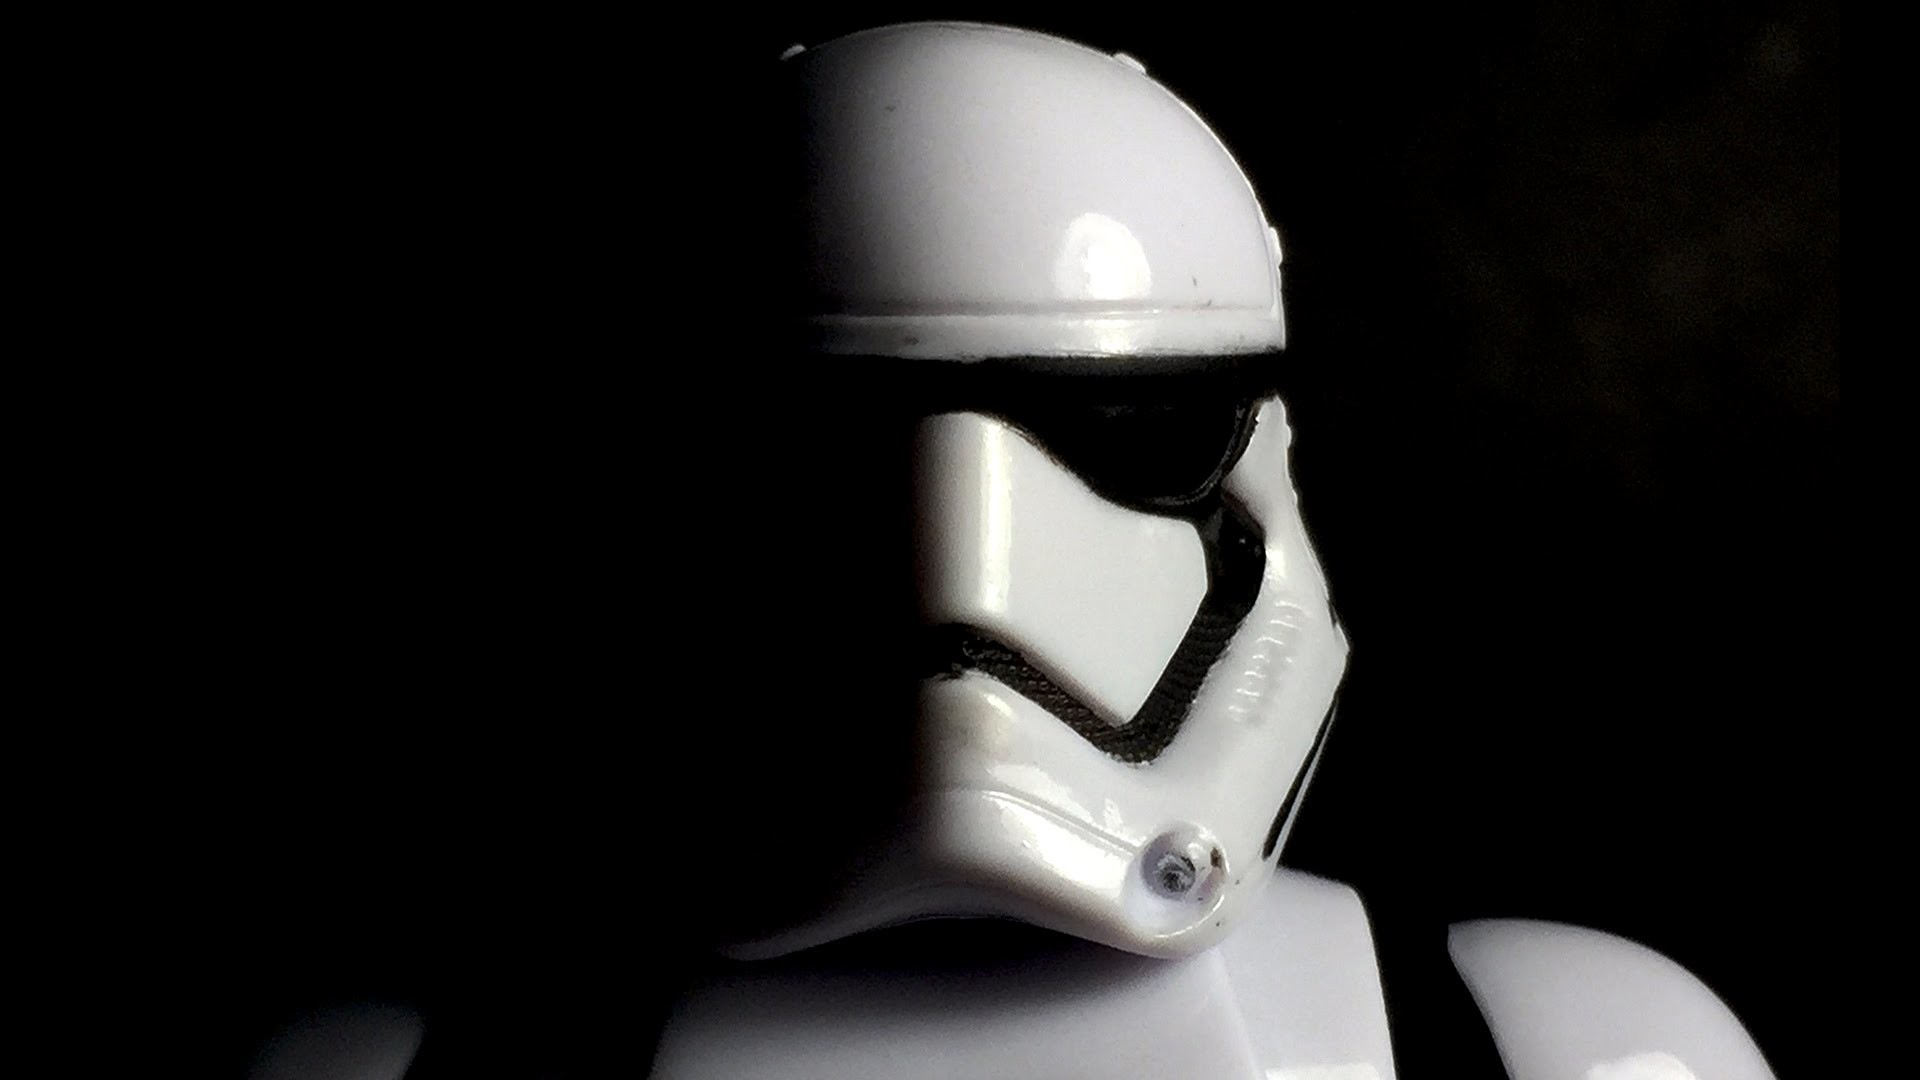 Stormtrooper 4k Wallpaper Posted By Sarah Anderson